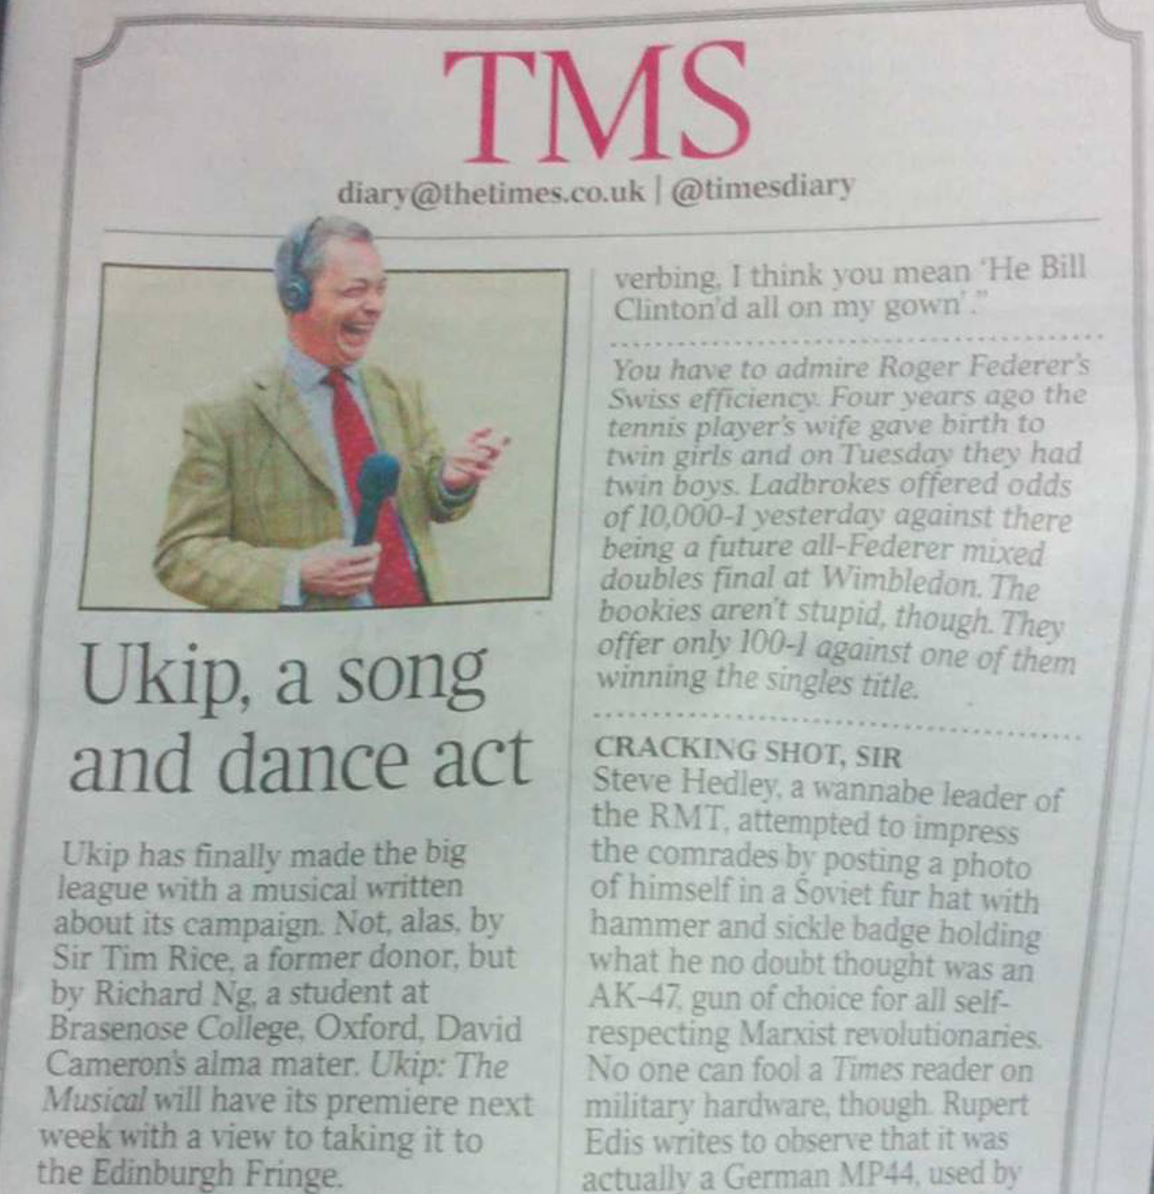 An extract from The Times diary.